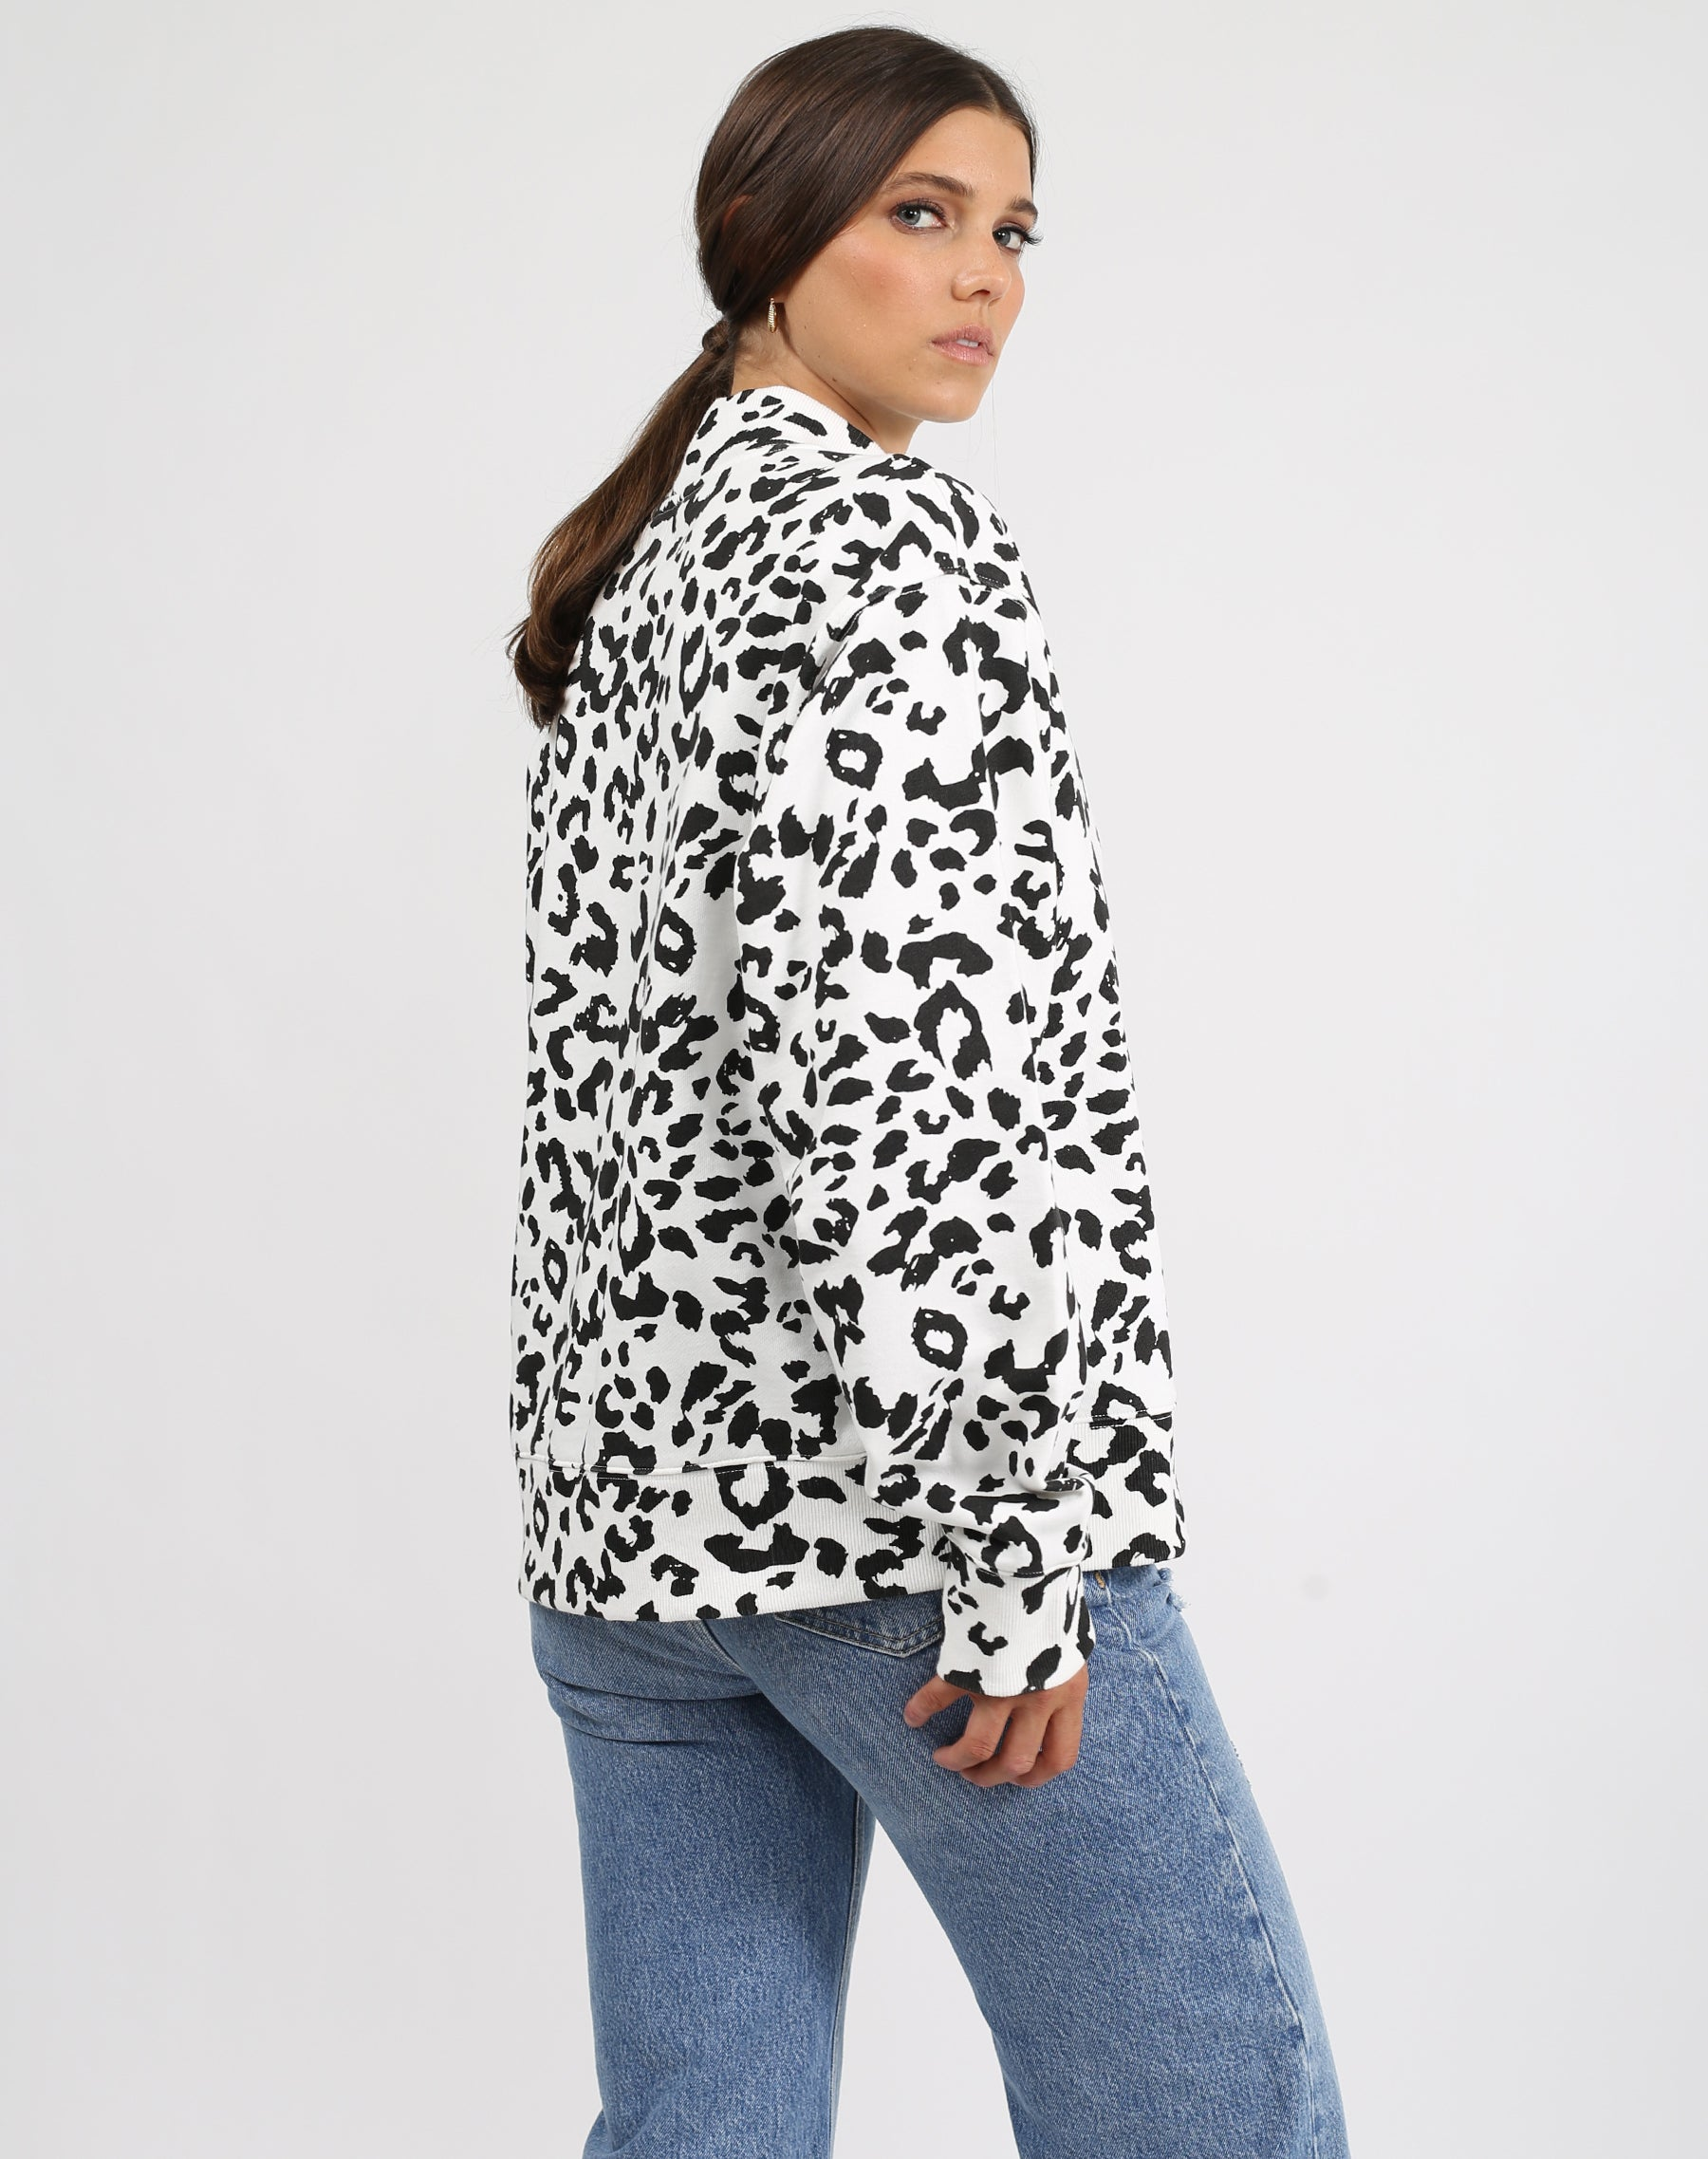 This is an image a model wearing the Step Sister Mock Neck Sweatshirt in Snow Leopard by Brunette the Label.